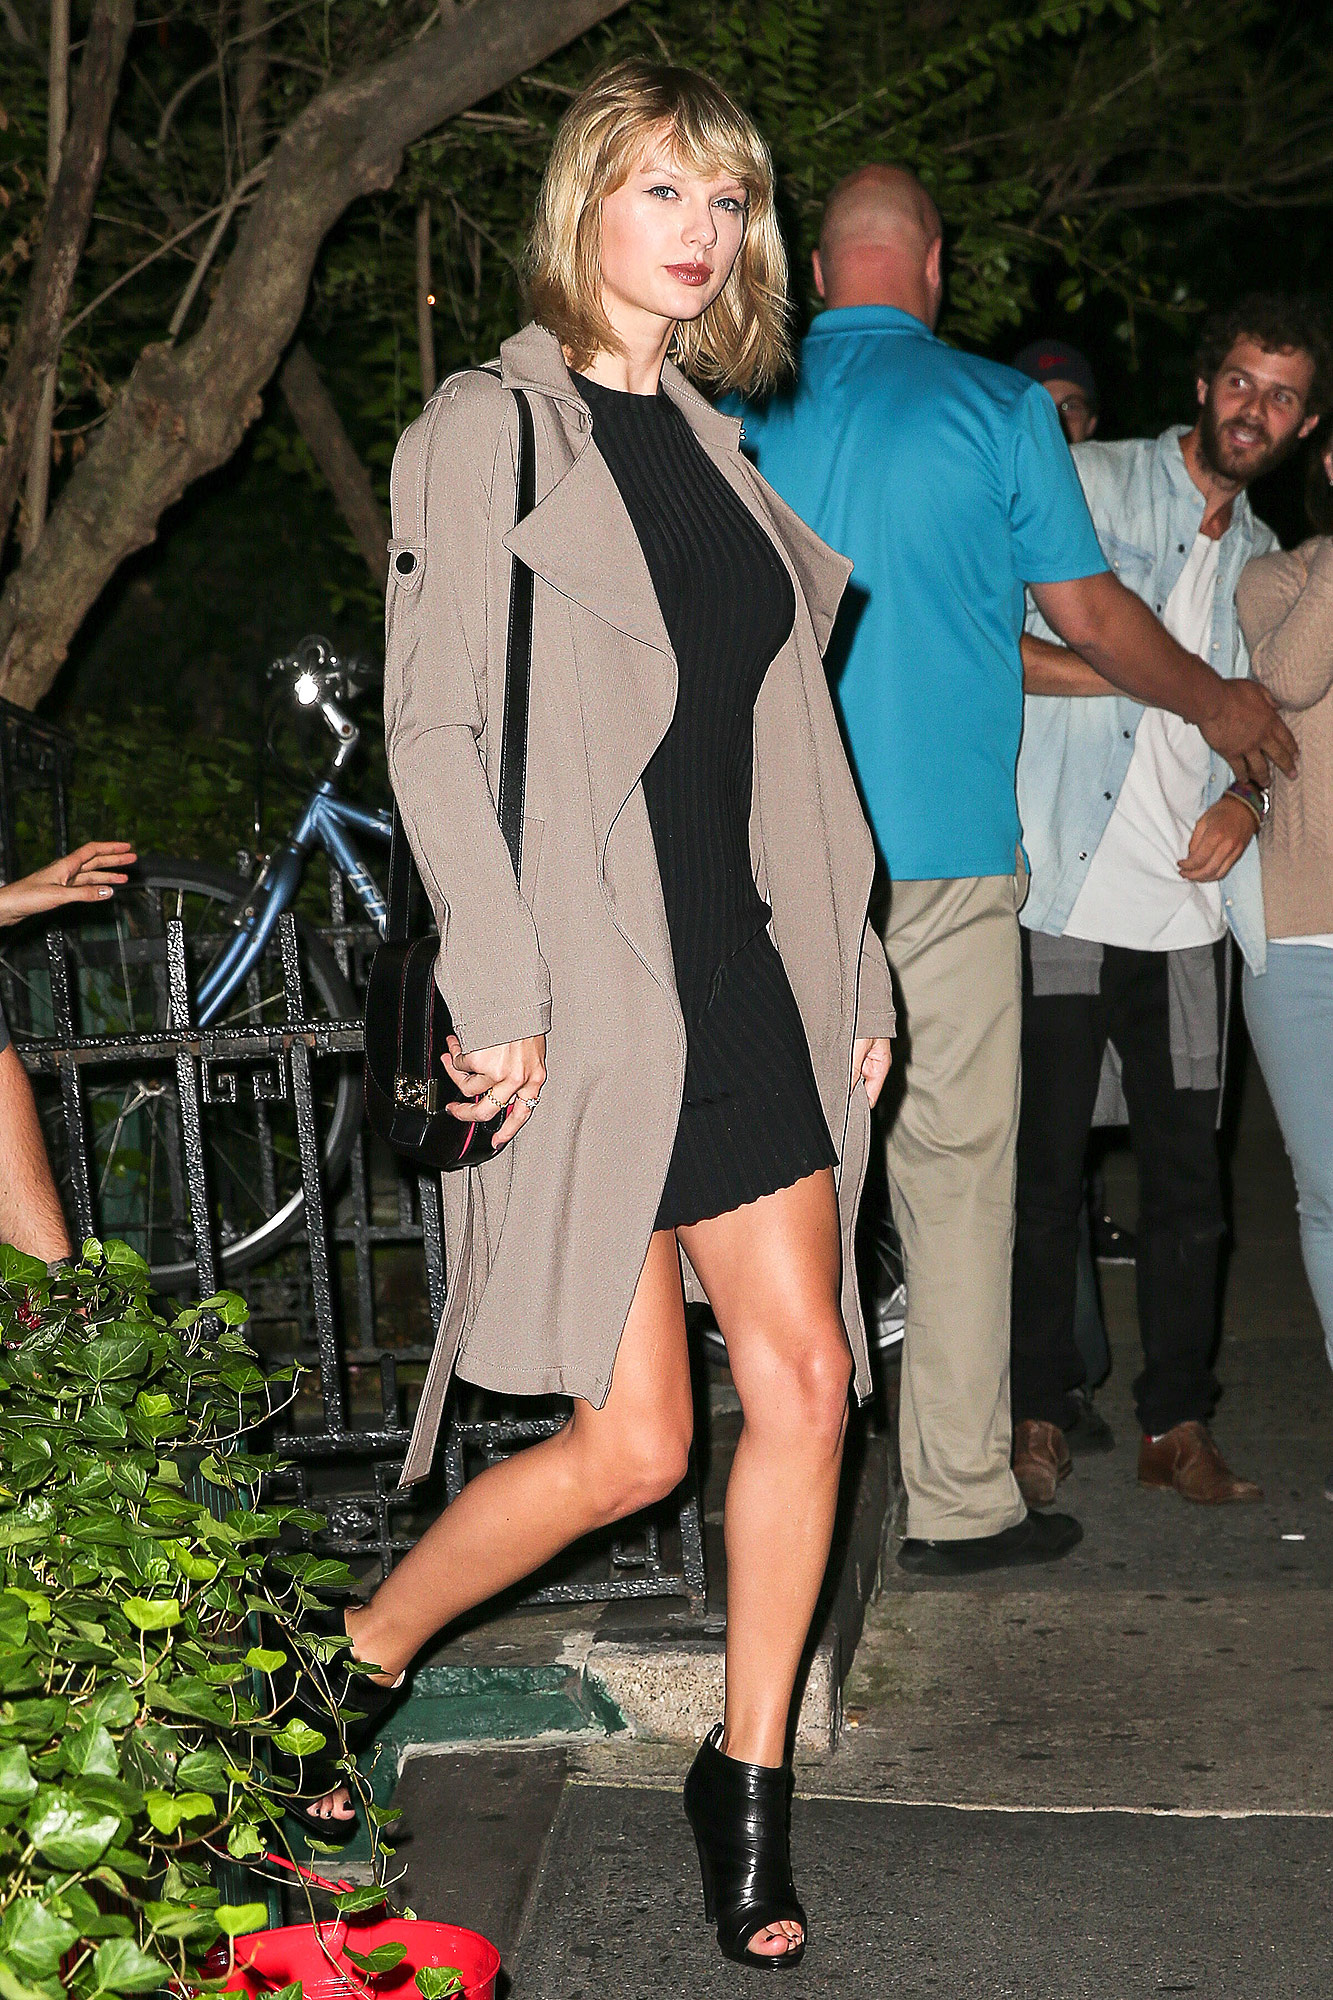 Taylor Swift and friends Cara Delevingne, Suki Waterhouse are seen after dinner leaving 'Waverly Inn' in the west village in New York City, NY, USA.